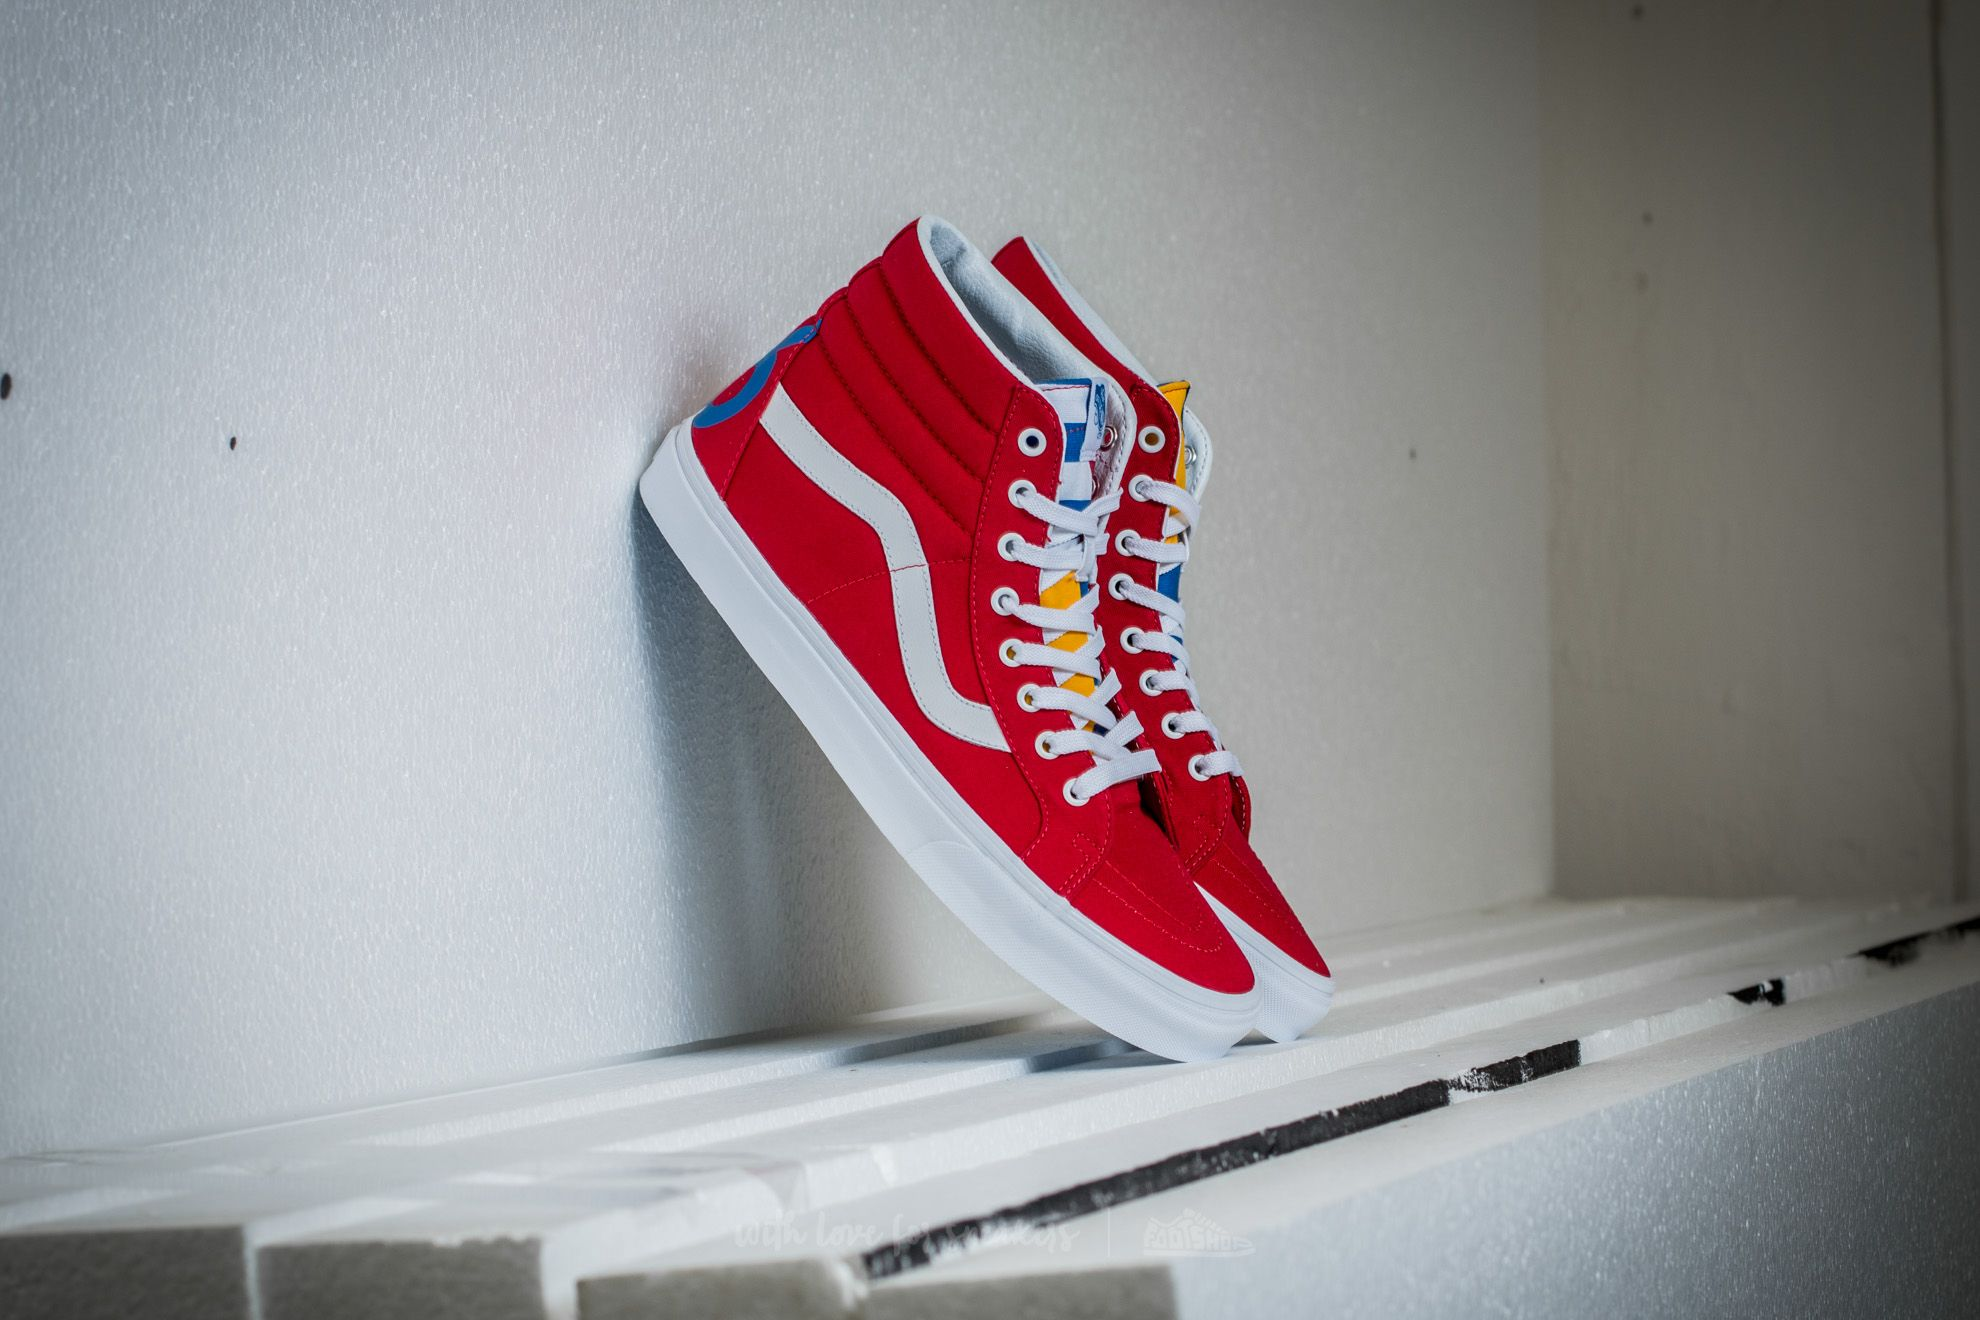 ccf4a2bc29c Vans Sk8-Hi Reissue (1966) Red  Blue  True White